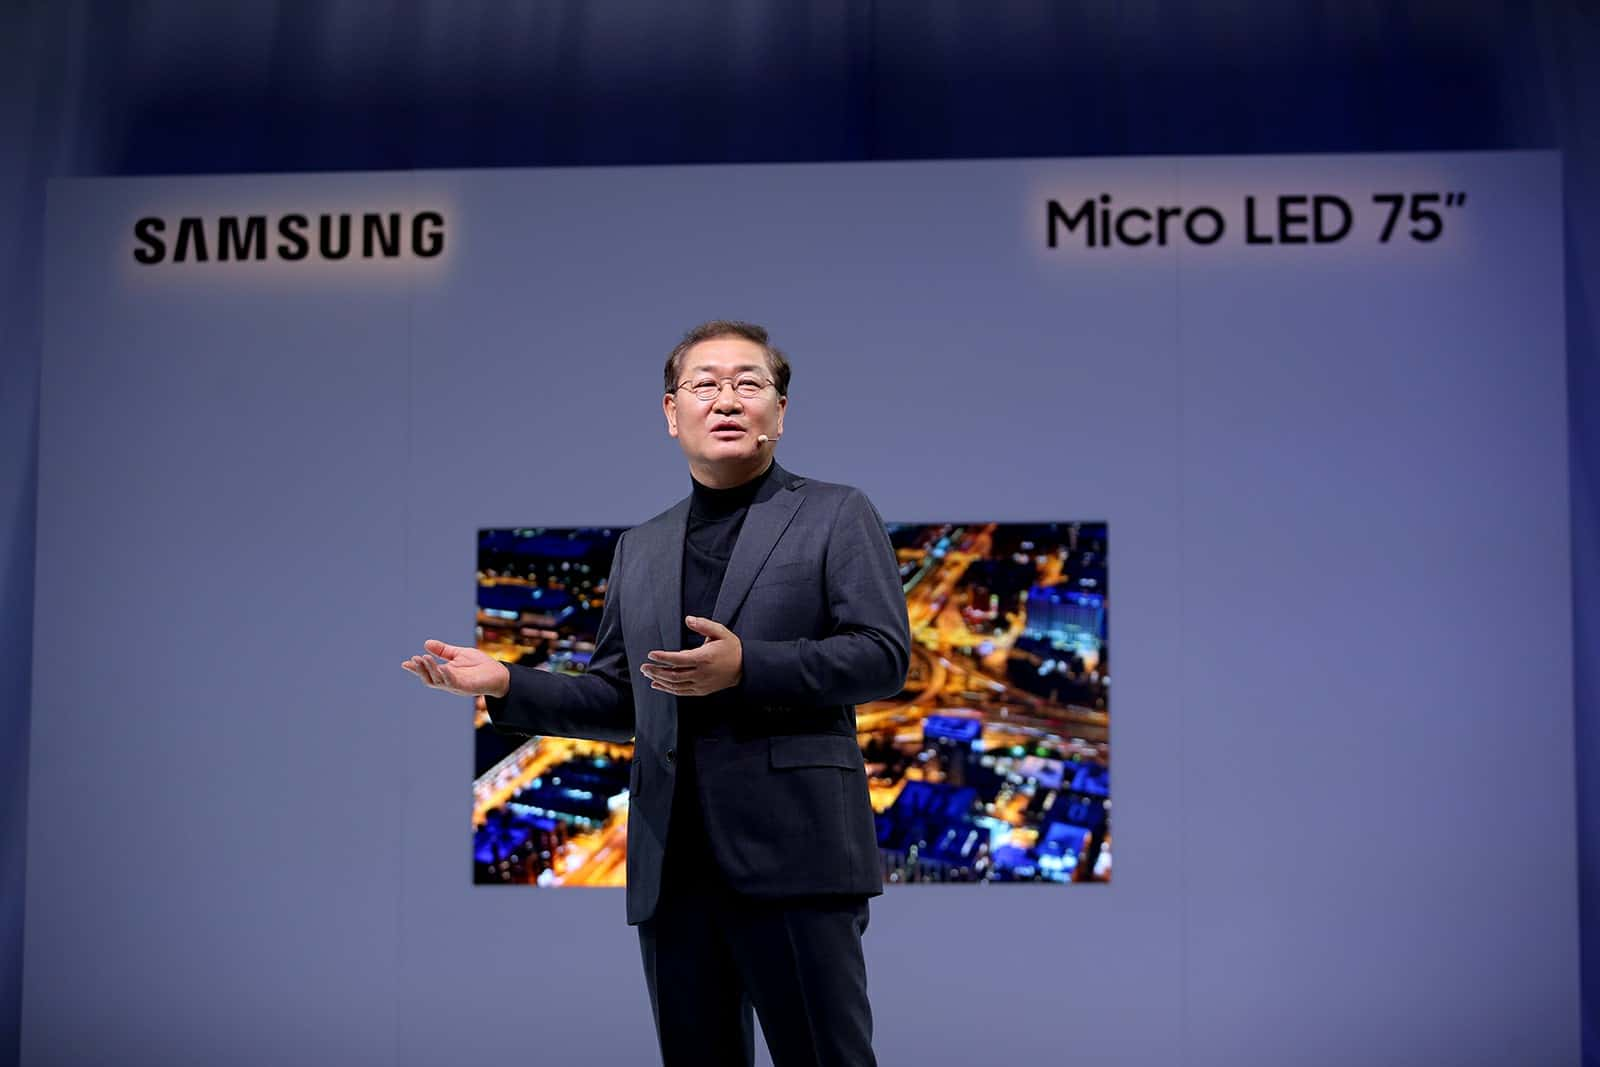 Samsung new Micro LED displays at CES 2019 2